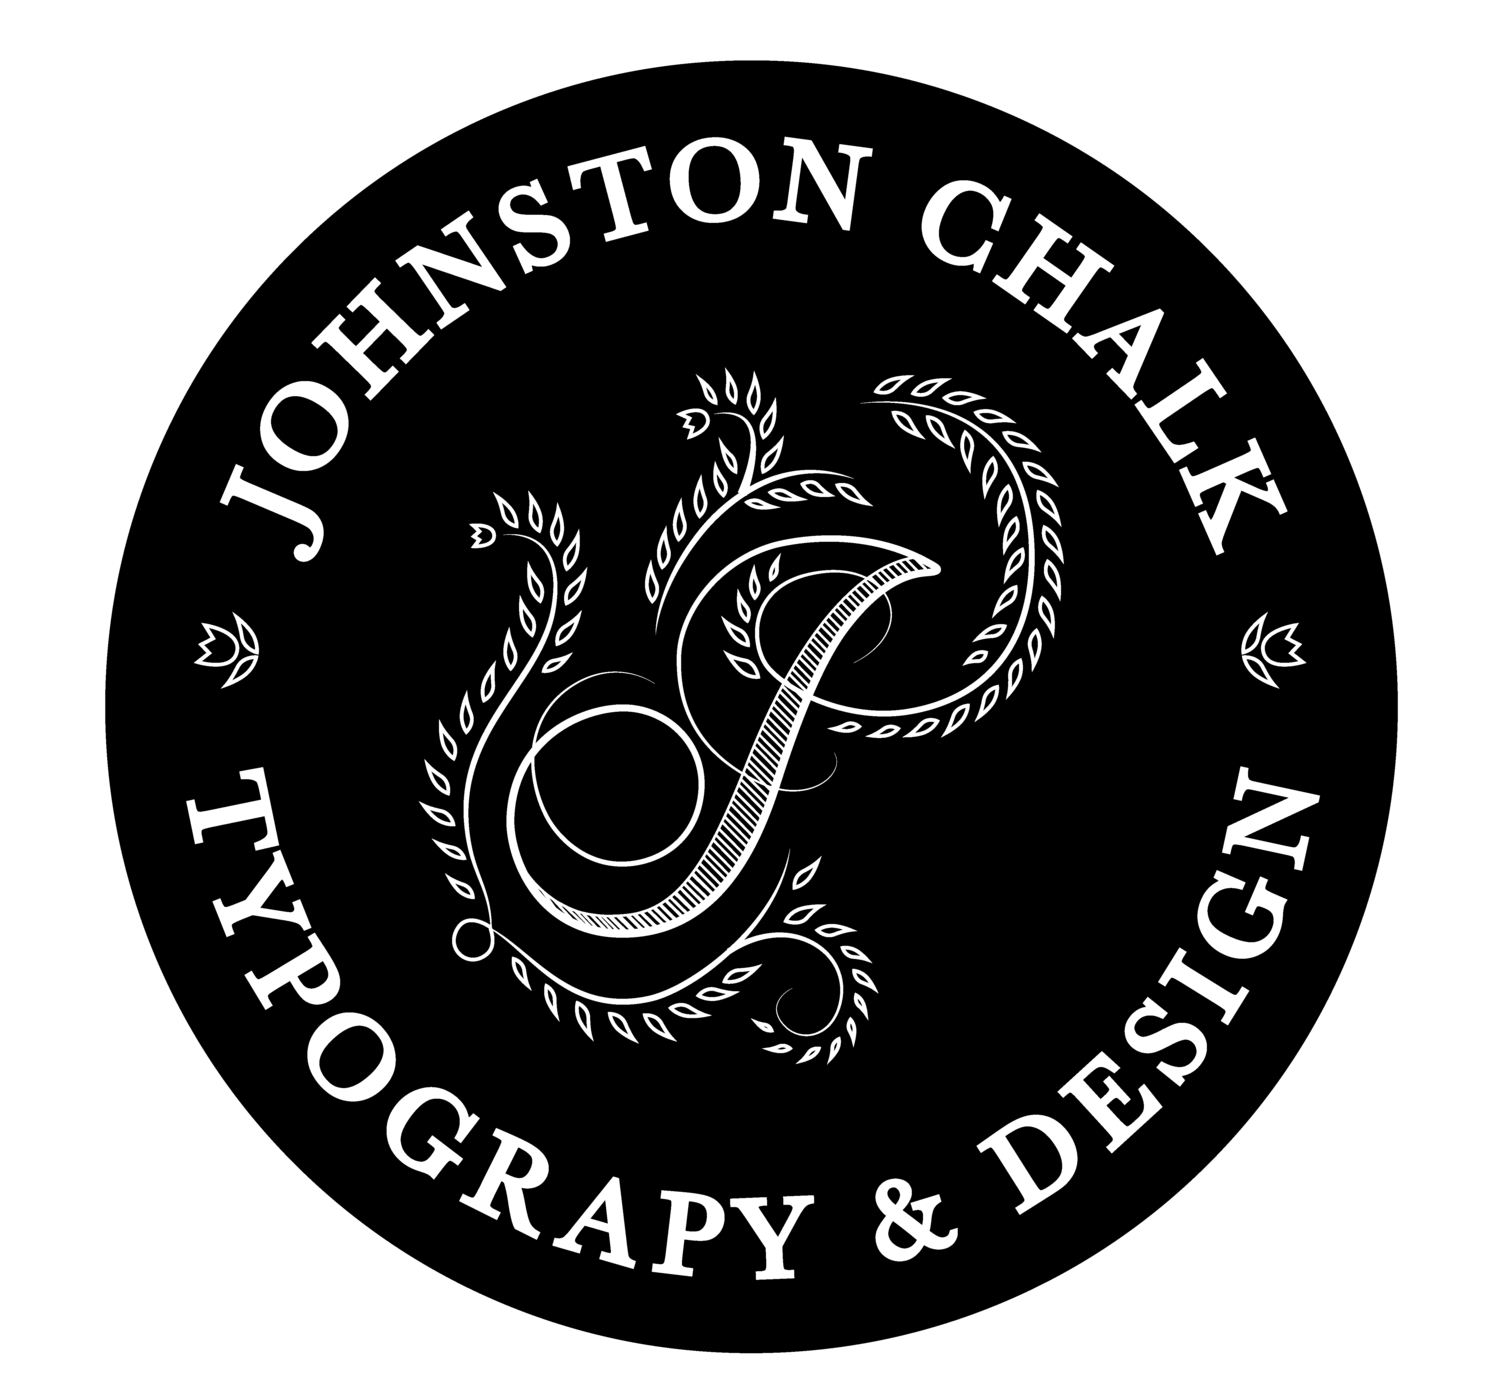 Johnston Chalk Typography & Design